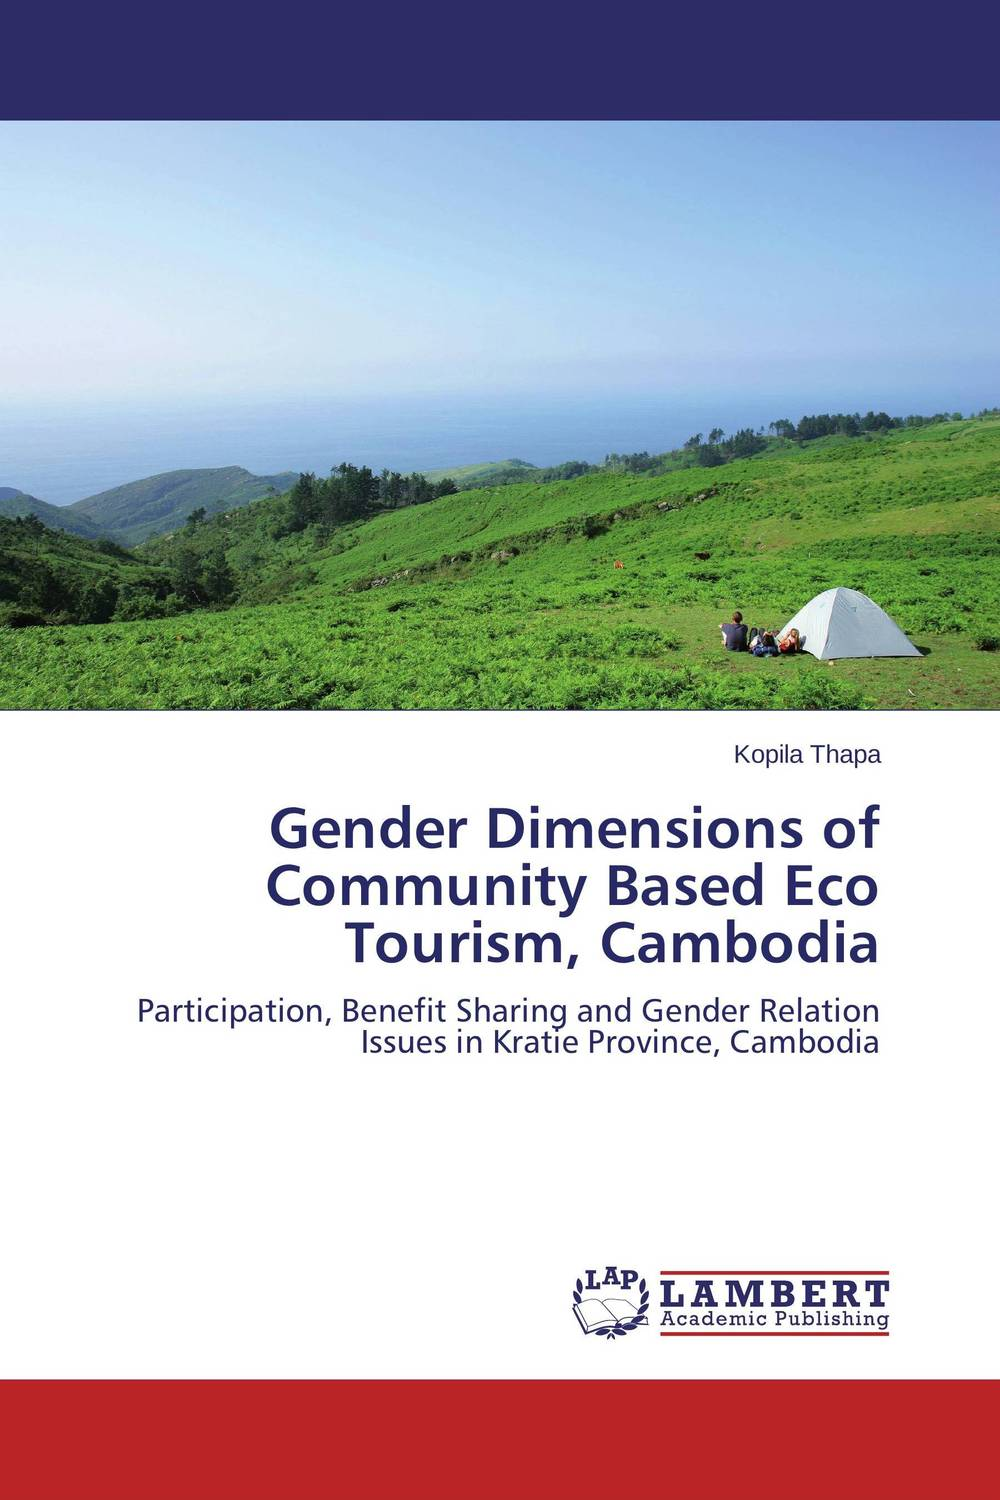 все цены на Gender Dimensions of Community Based Eco Tourism, Cambodia онлайн